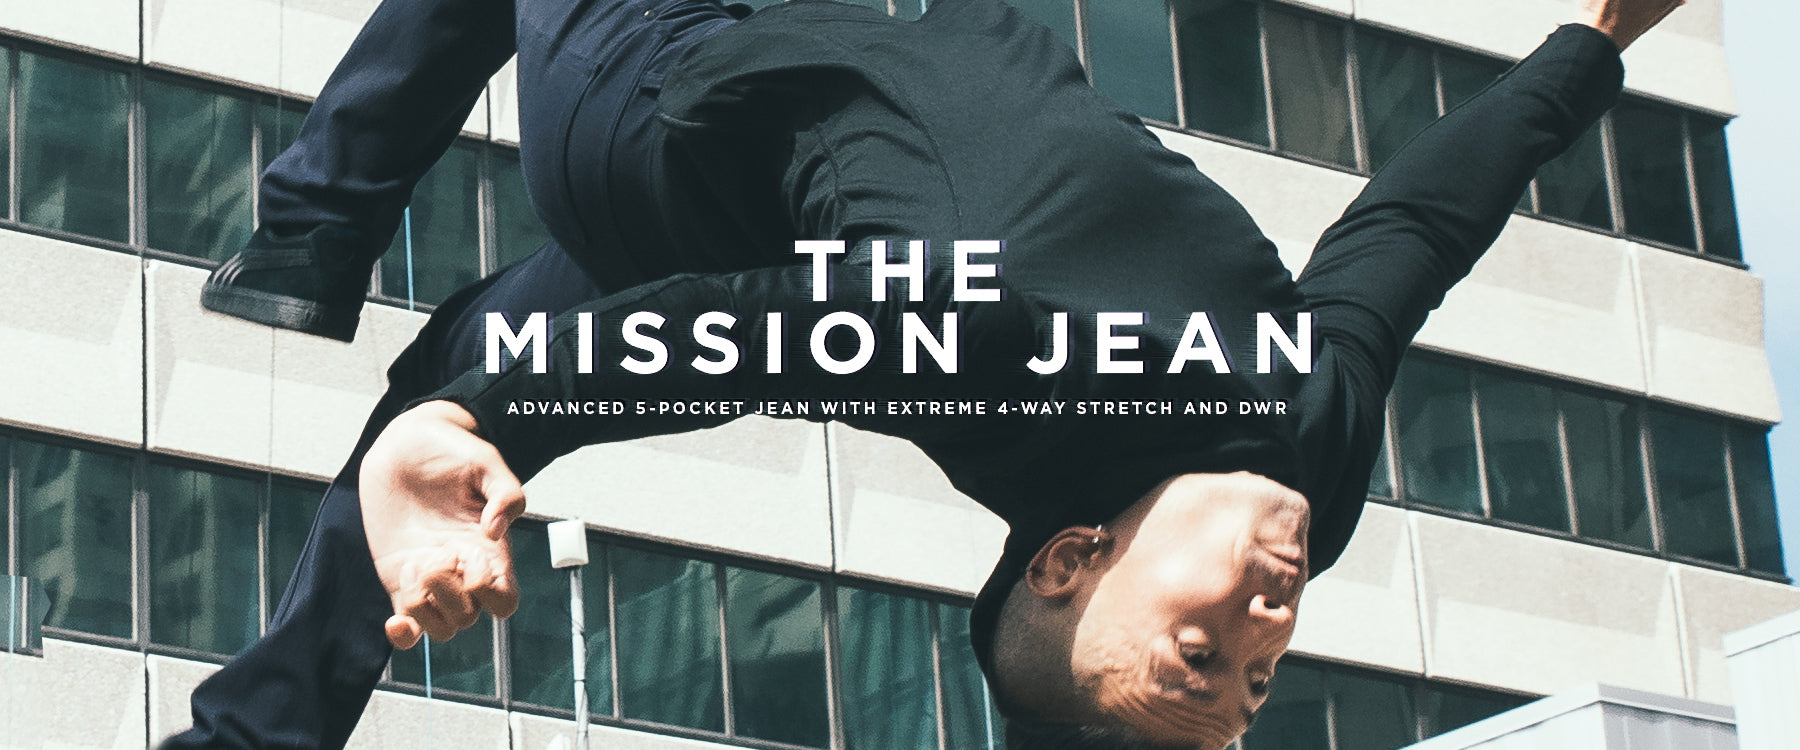 The Mission Jean : Advanced 5-pocket Jean with Extreme 4-Way Stretch and DWR